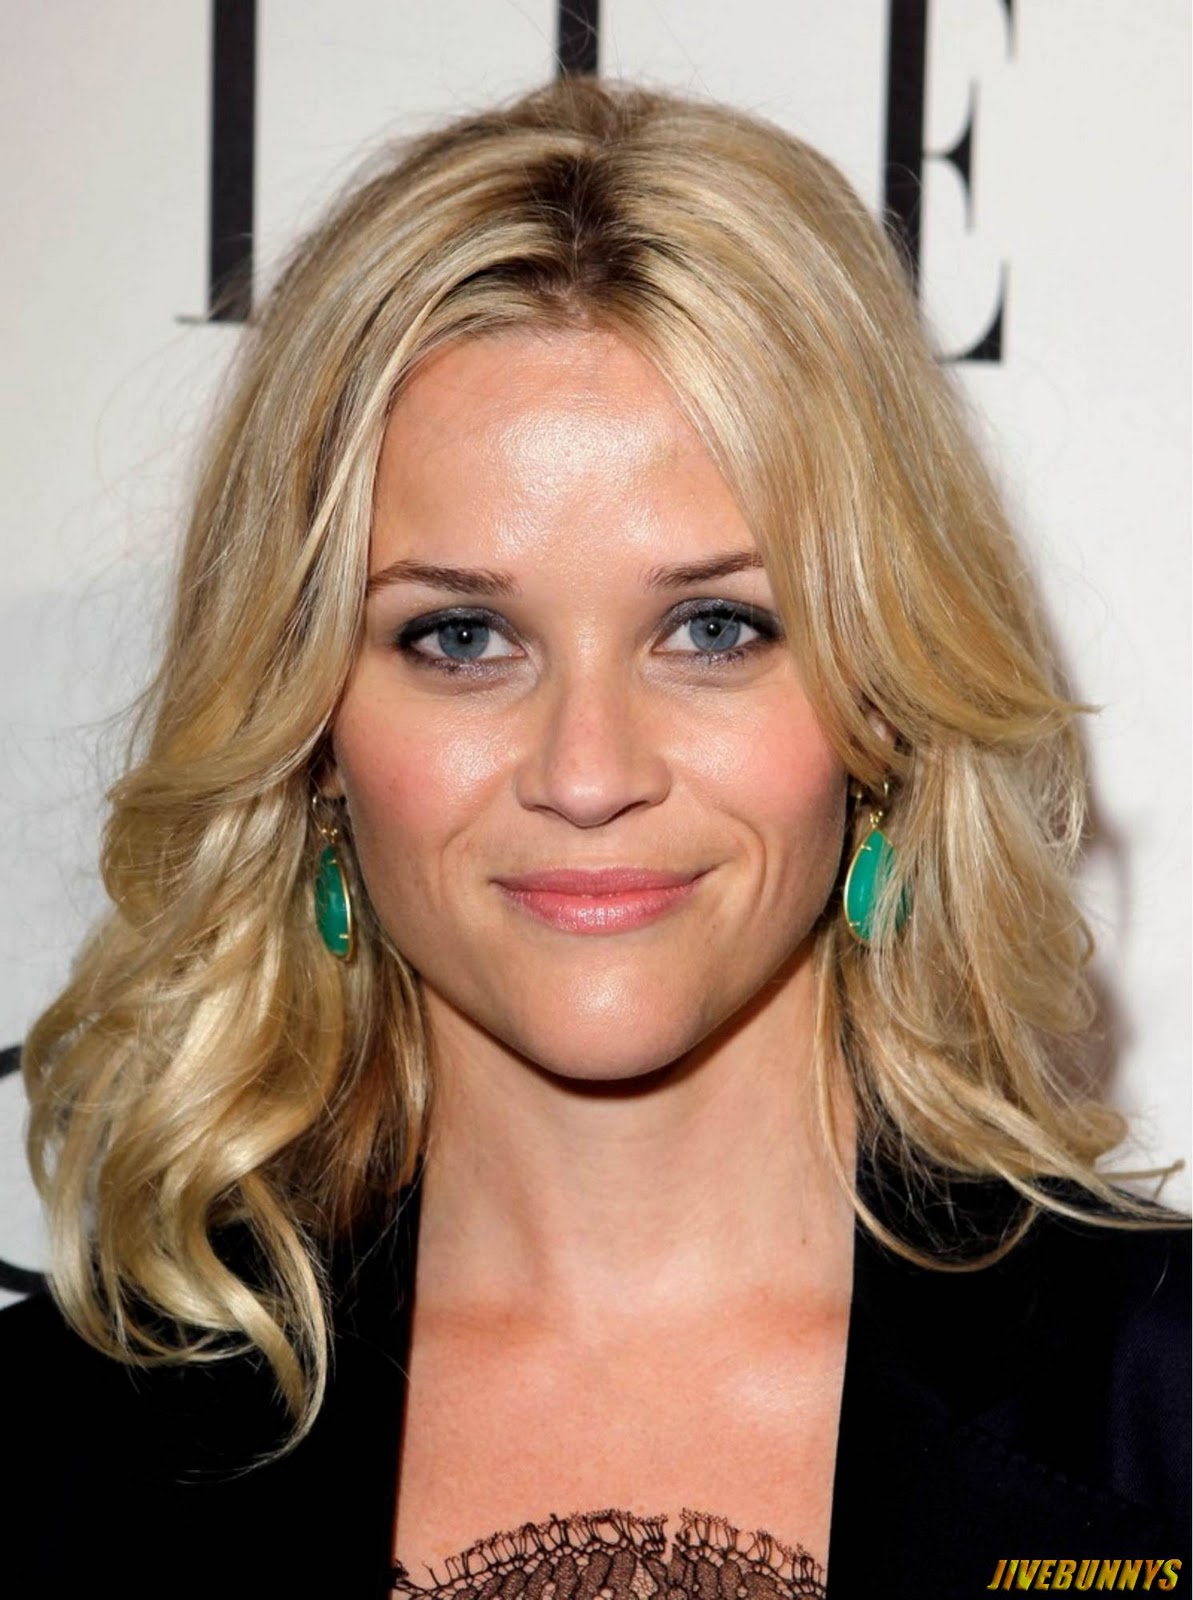 Consider, that reese witherspoon nipple slip think, that